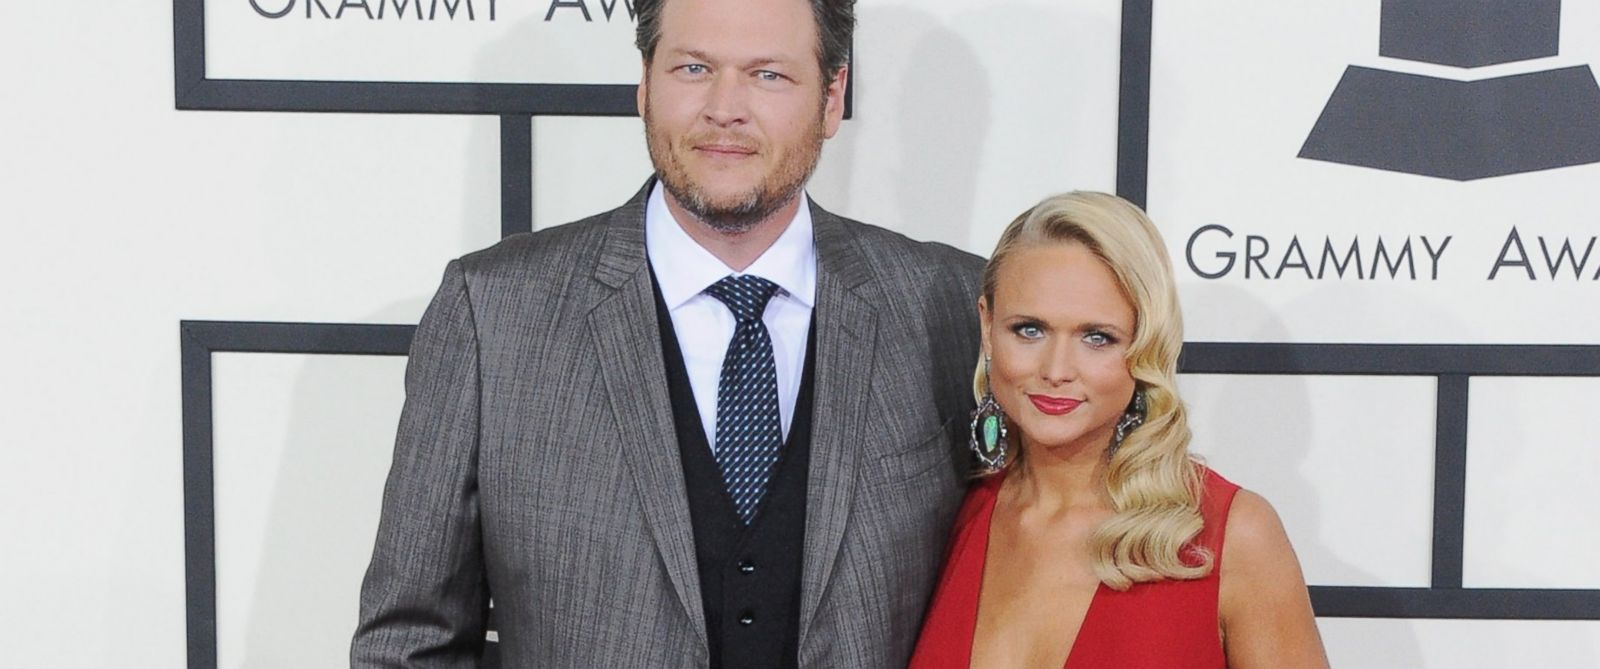 PHOTO: Singers Blake Shelton and Miranda Lambert arrive at the 56th GRAMMY Awards in this file photo, Jan. 26, 2014 in Los Angeles.